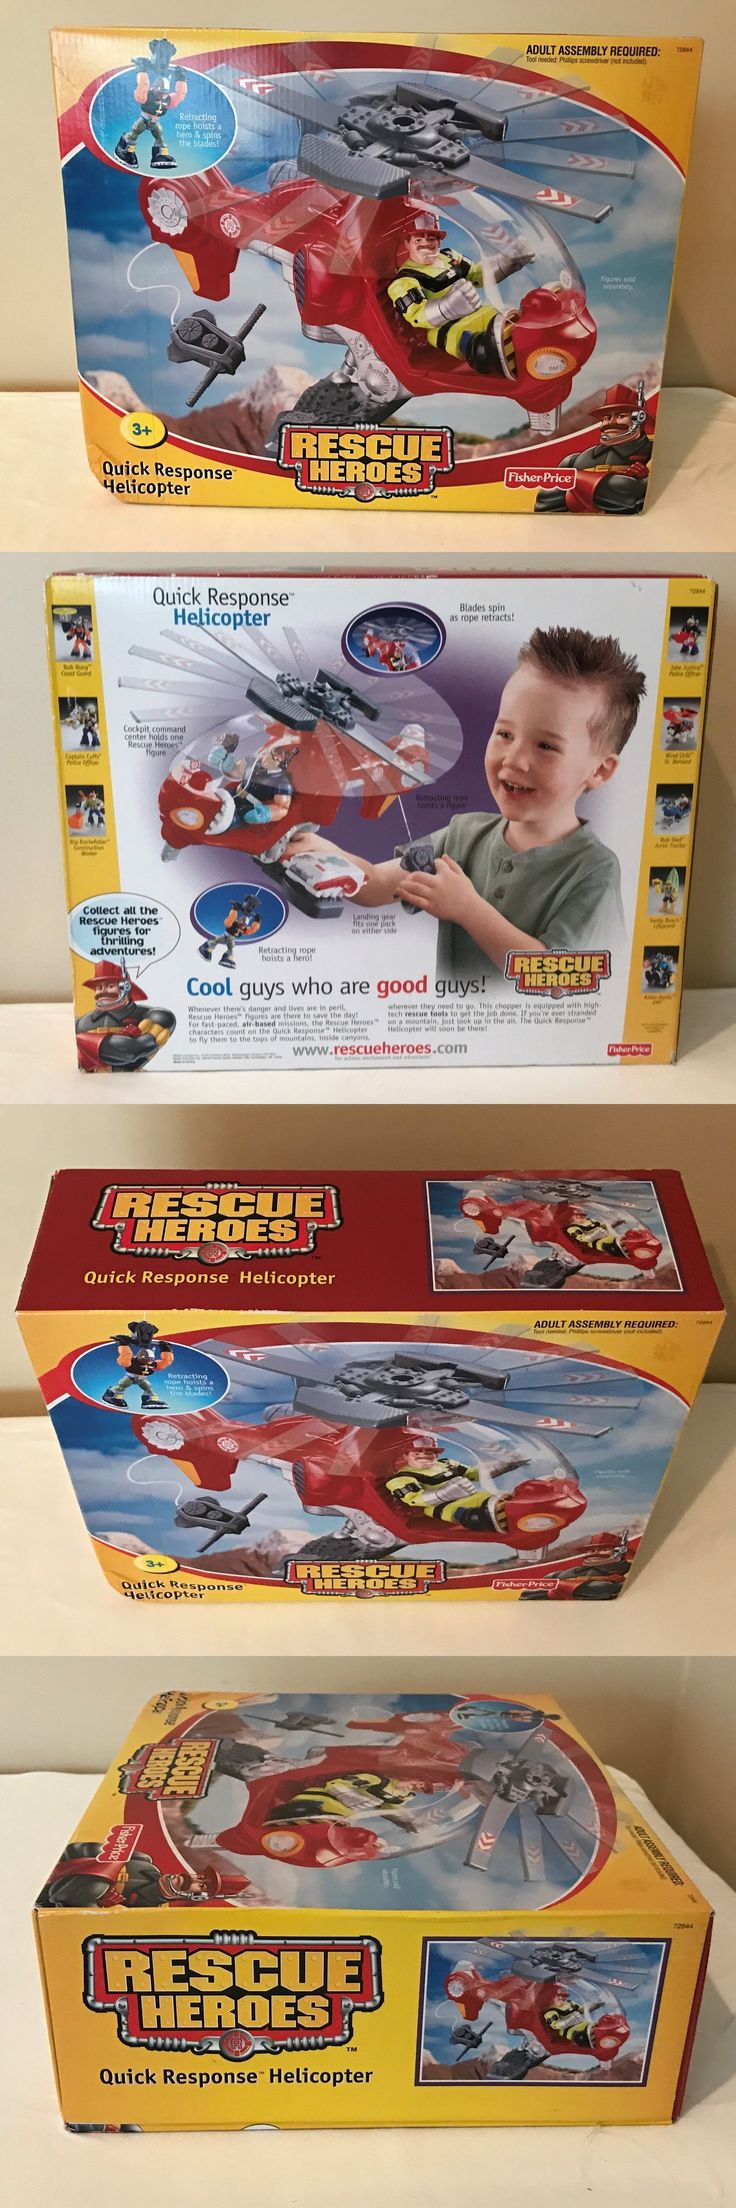 Rescue Heroes 50307: Fisher Price Rescue Heroes - Quick Response Helicopter - Brand New, Sealed! -> BUY IT NOW ONLY: $49.99 on eBay!